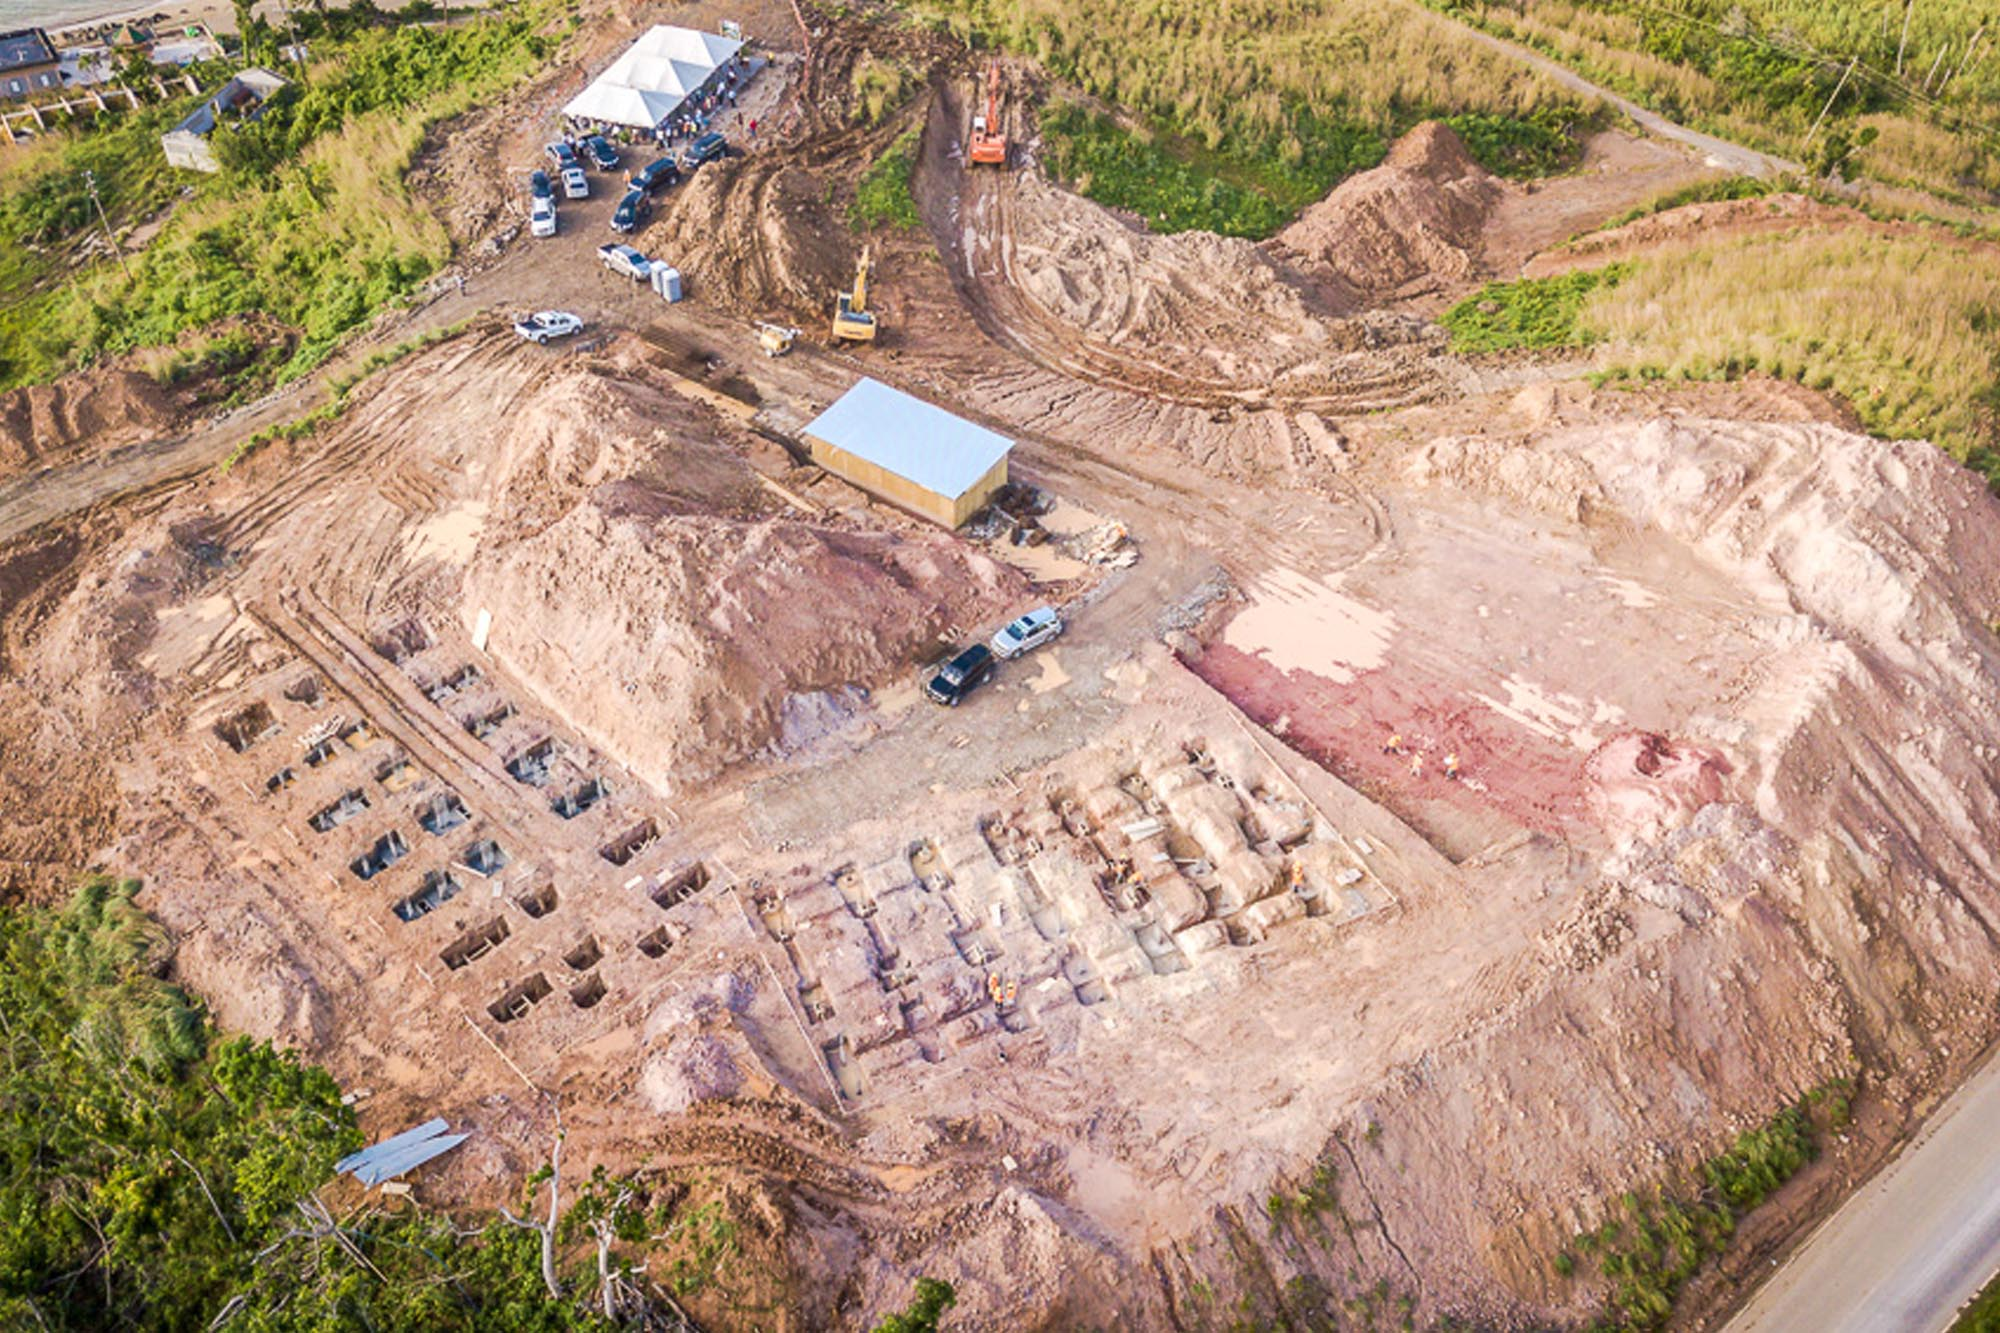 Construction progress at Anichi Resort & Spa